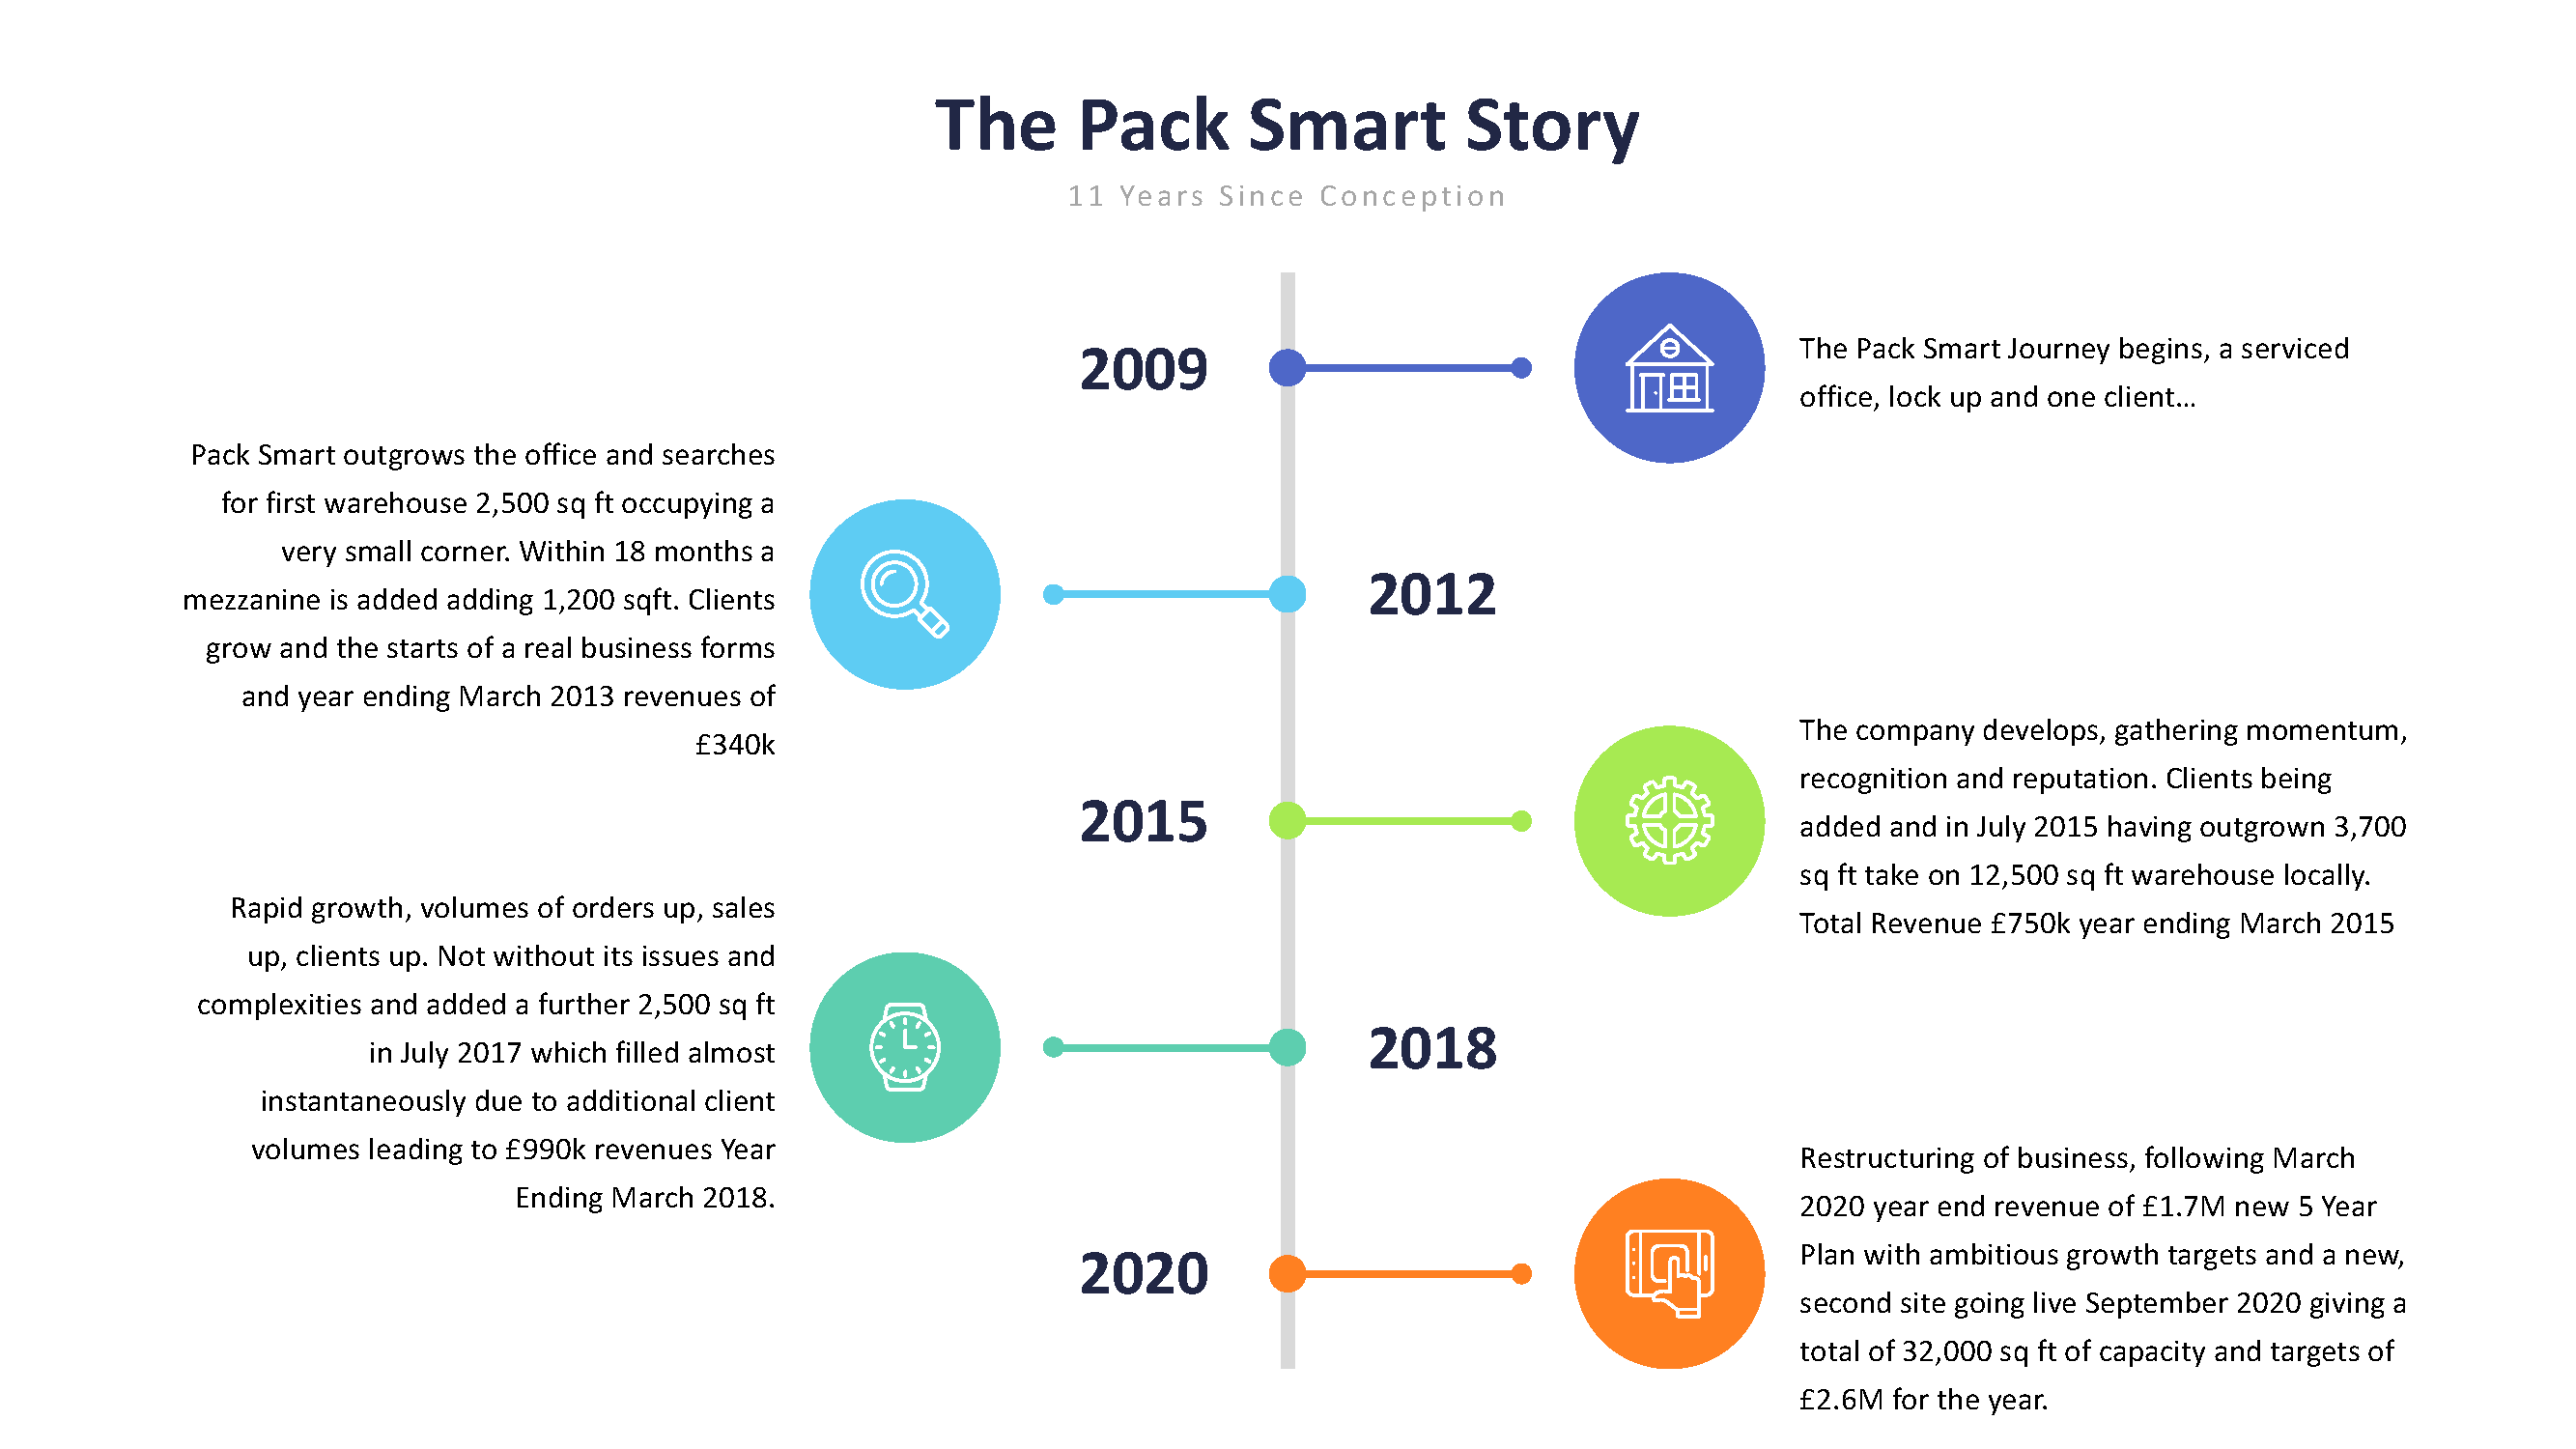 The Pack Smart story